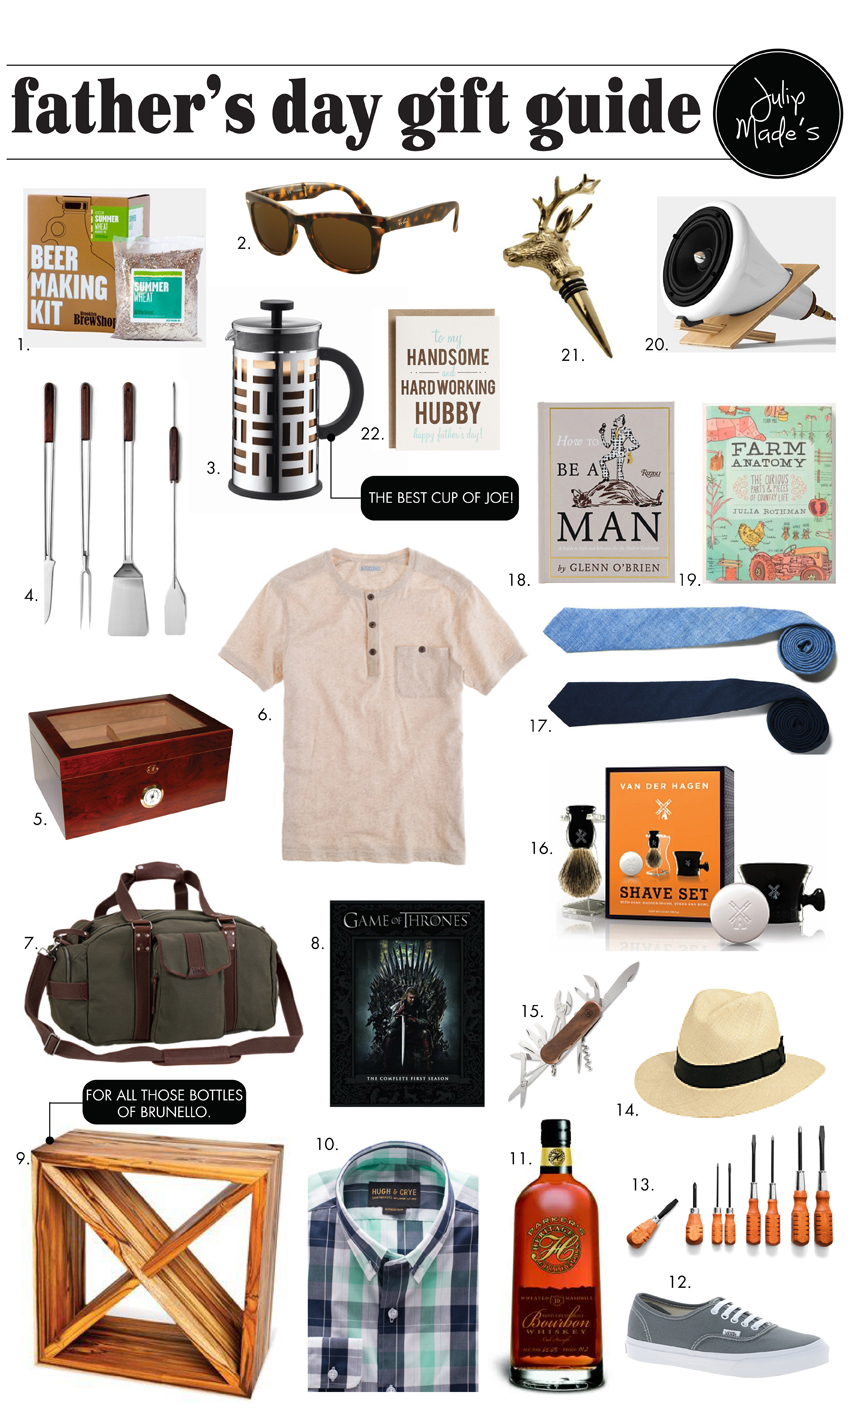 Julip Made fathers day gift guide